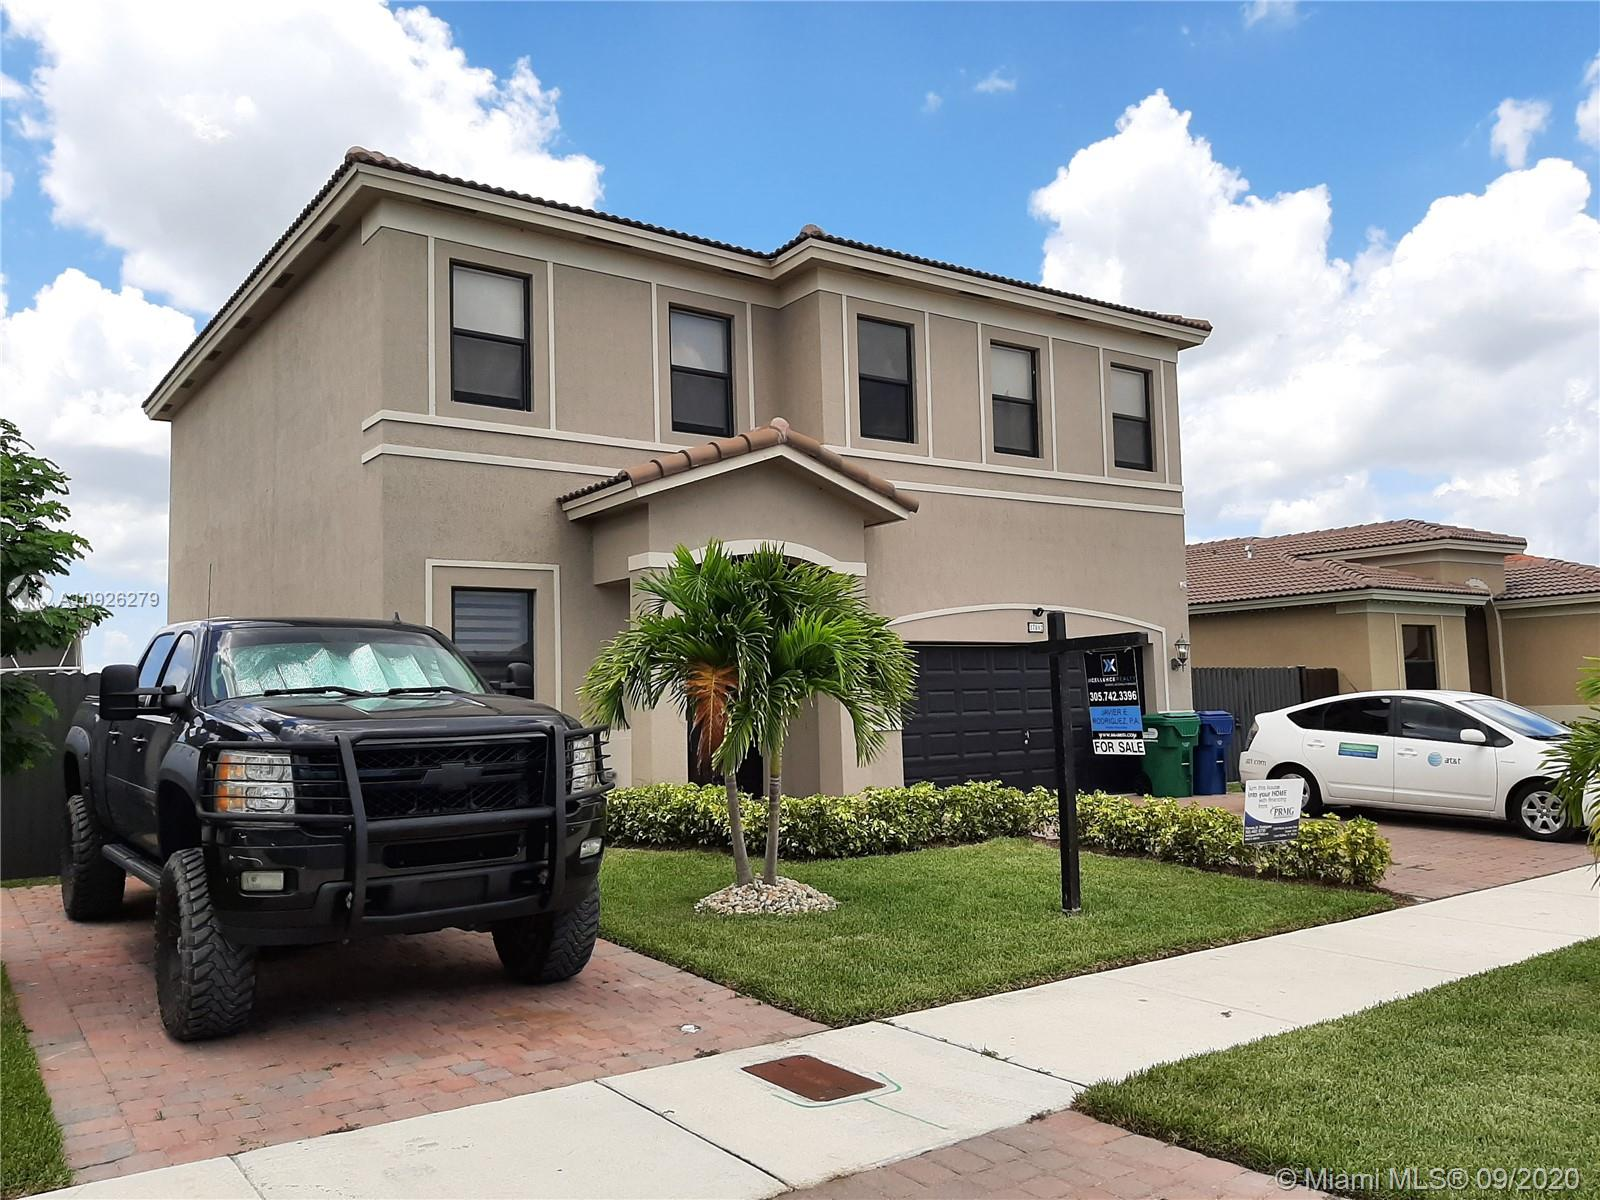 4/3.5 AMAZING HOME. 2017 NEW CONSTRUCION. THIS PROPERTY OFFERS MANY EXTRAS, LIKE IMPACT WINDOWS, PORCELAIN FLOORS, STAINLESS STEEL APPLIANCES, GRANITE KITCHEN TOP, WITH UPGRADED WOOD CABINETS, OVERSIZE LOT. CLOSE TO SHOPPING CENTERS, RESTAURANTS, MARKETS, AND CONVENIENT QUICK ACCESS TO THE TURNPIKE. OWNERS MOTIVATED, PROPERTY SHOWS VERY WELL.